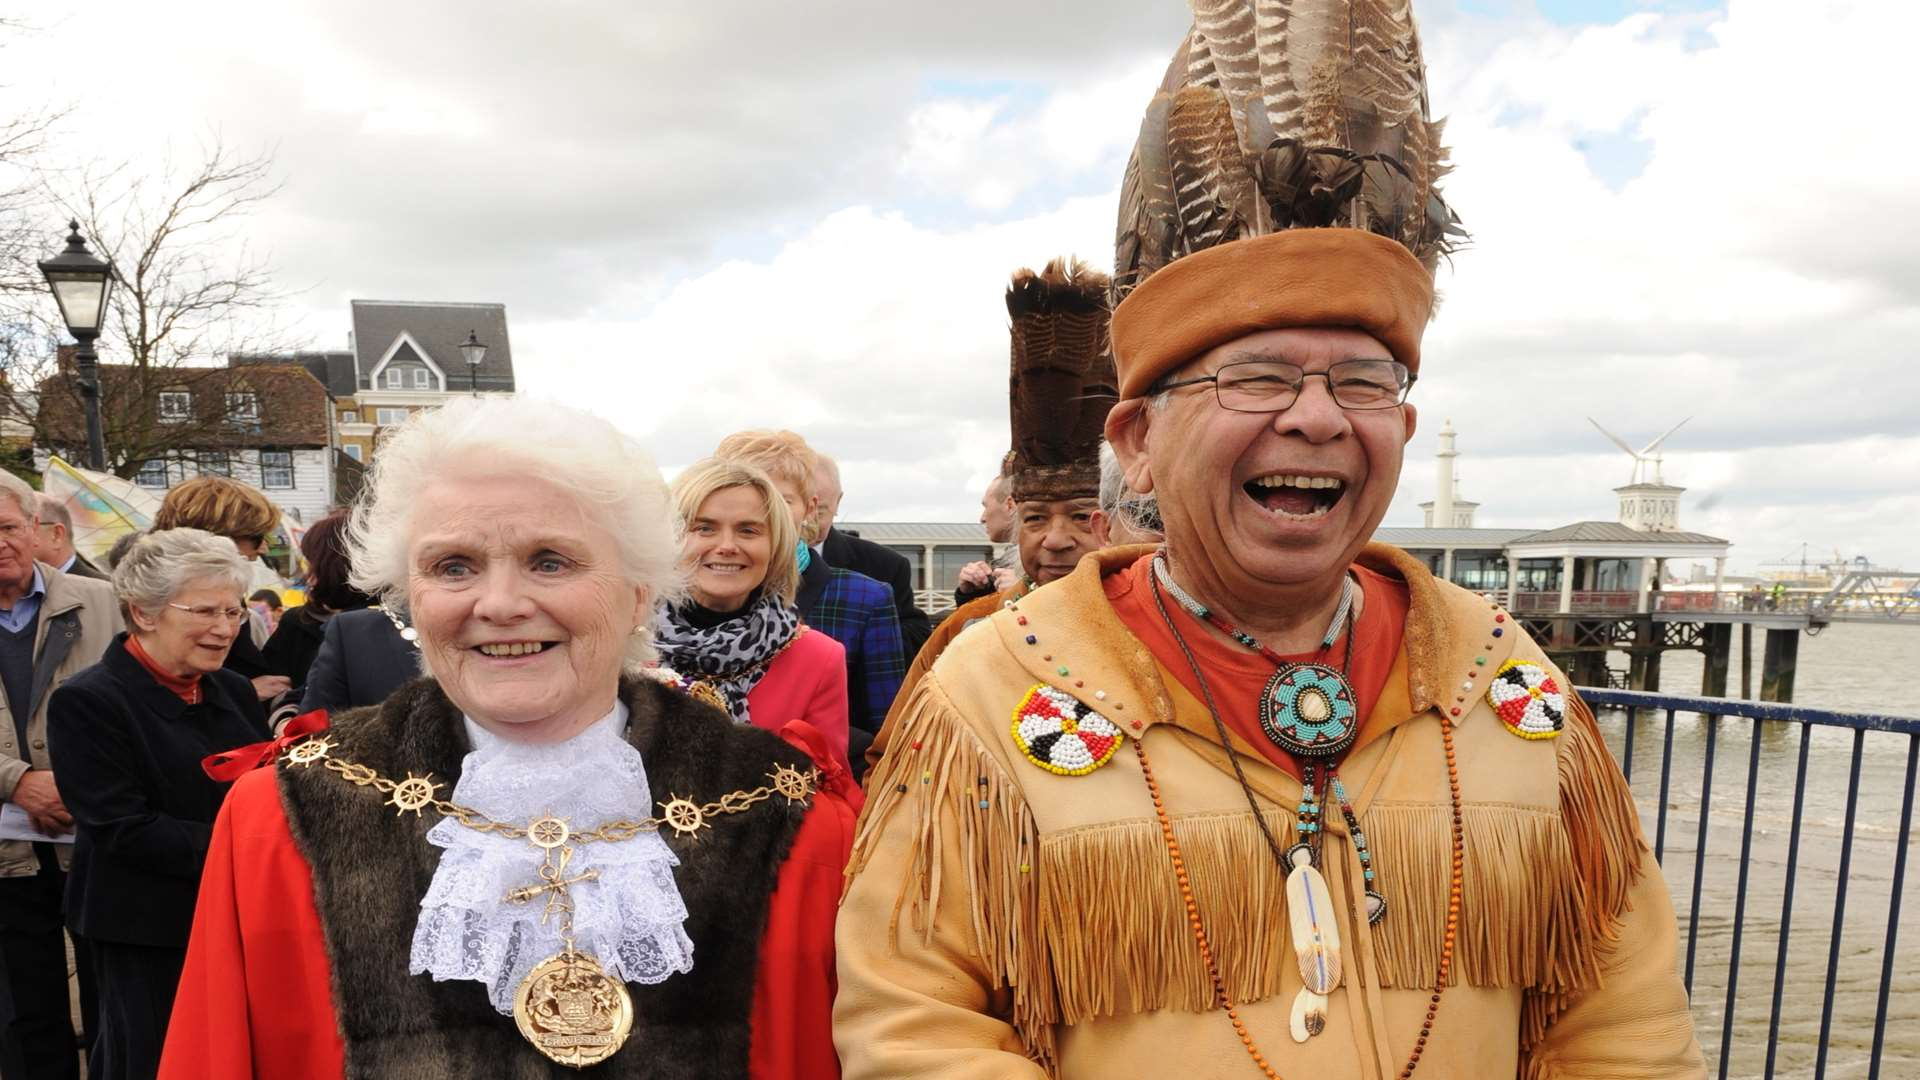 Cllr Greta Goatley took part in celebrations to mark the 400th anniversary of Pocahontas' death. Picture: Steve Crispe